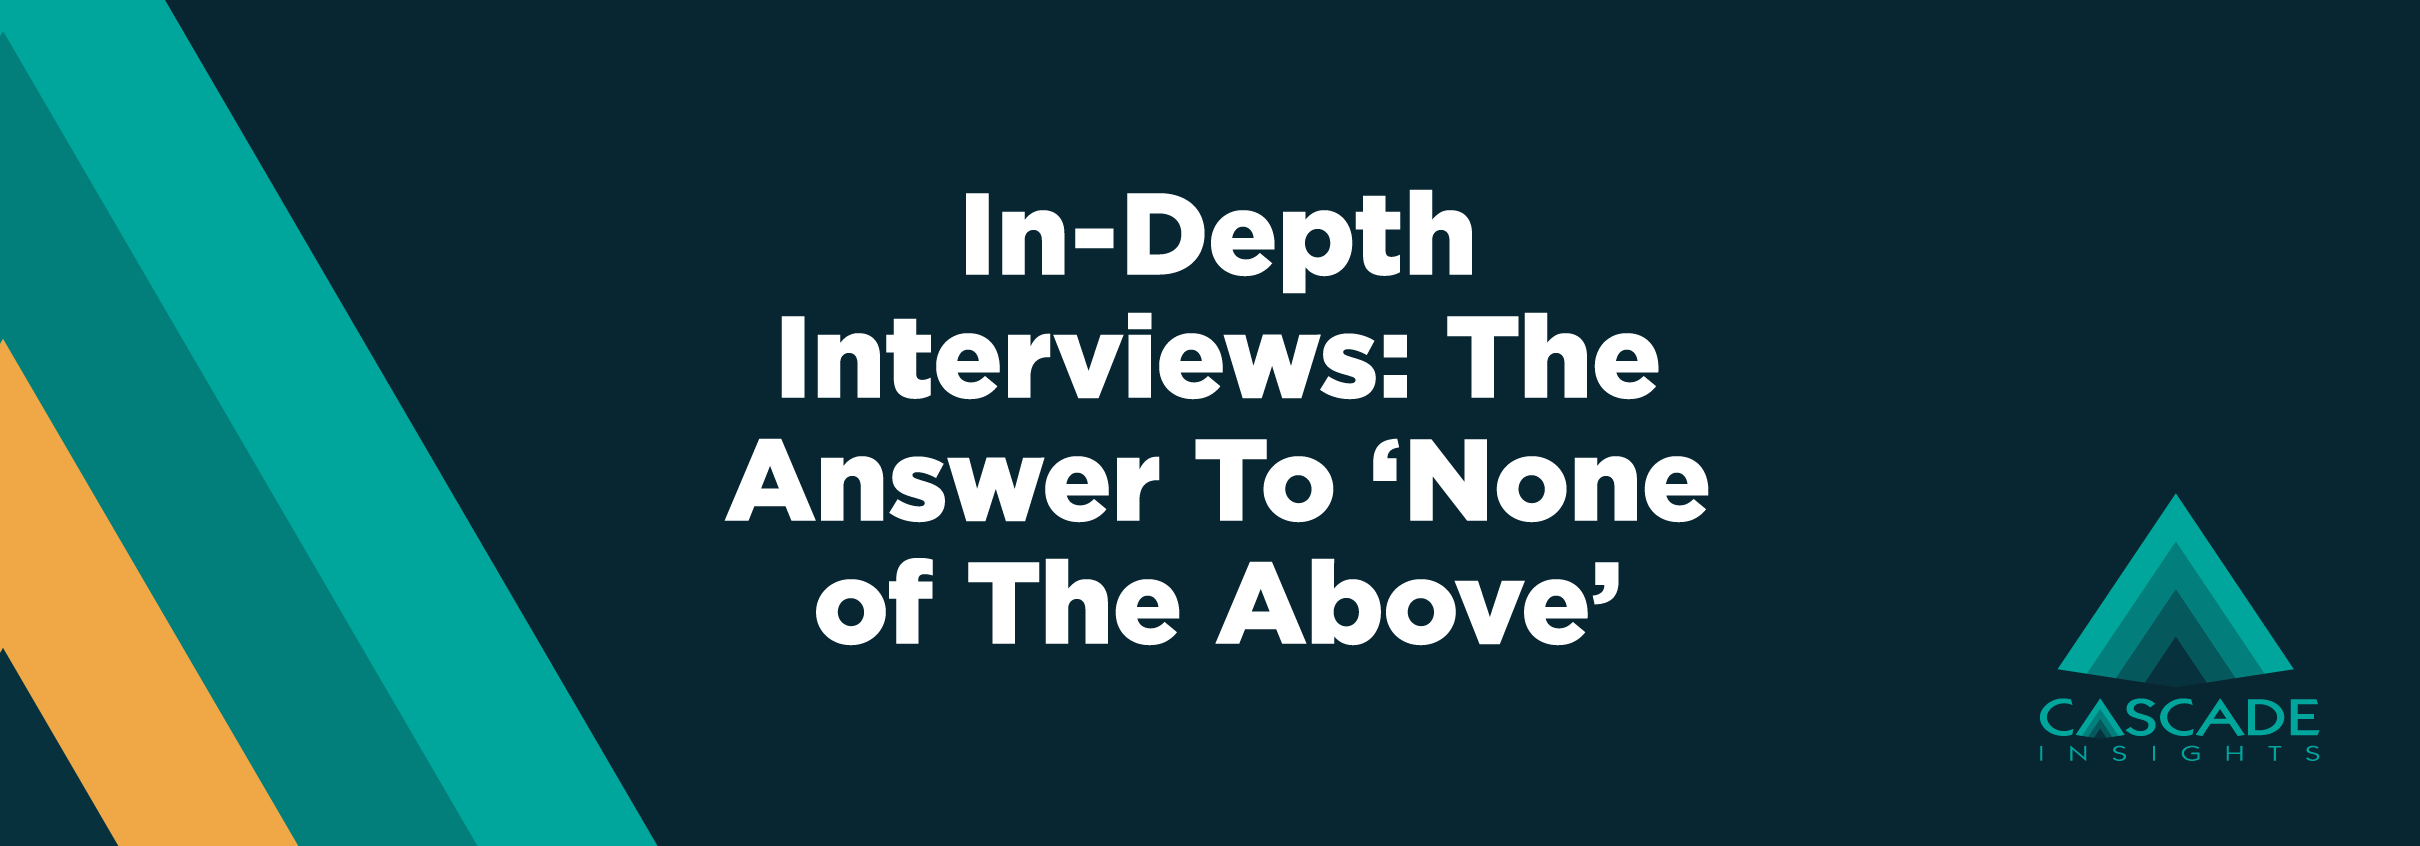 In-Depth Interviews: The Answer To 'None of The Above'